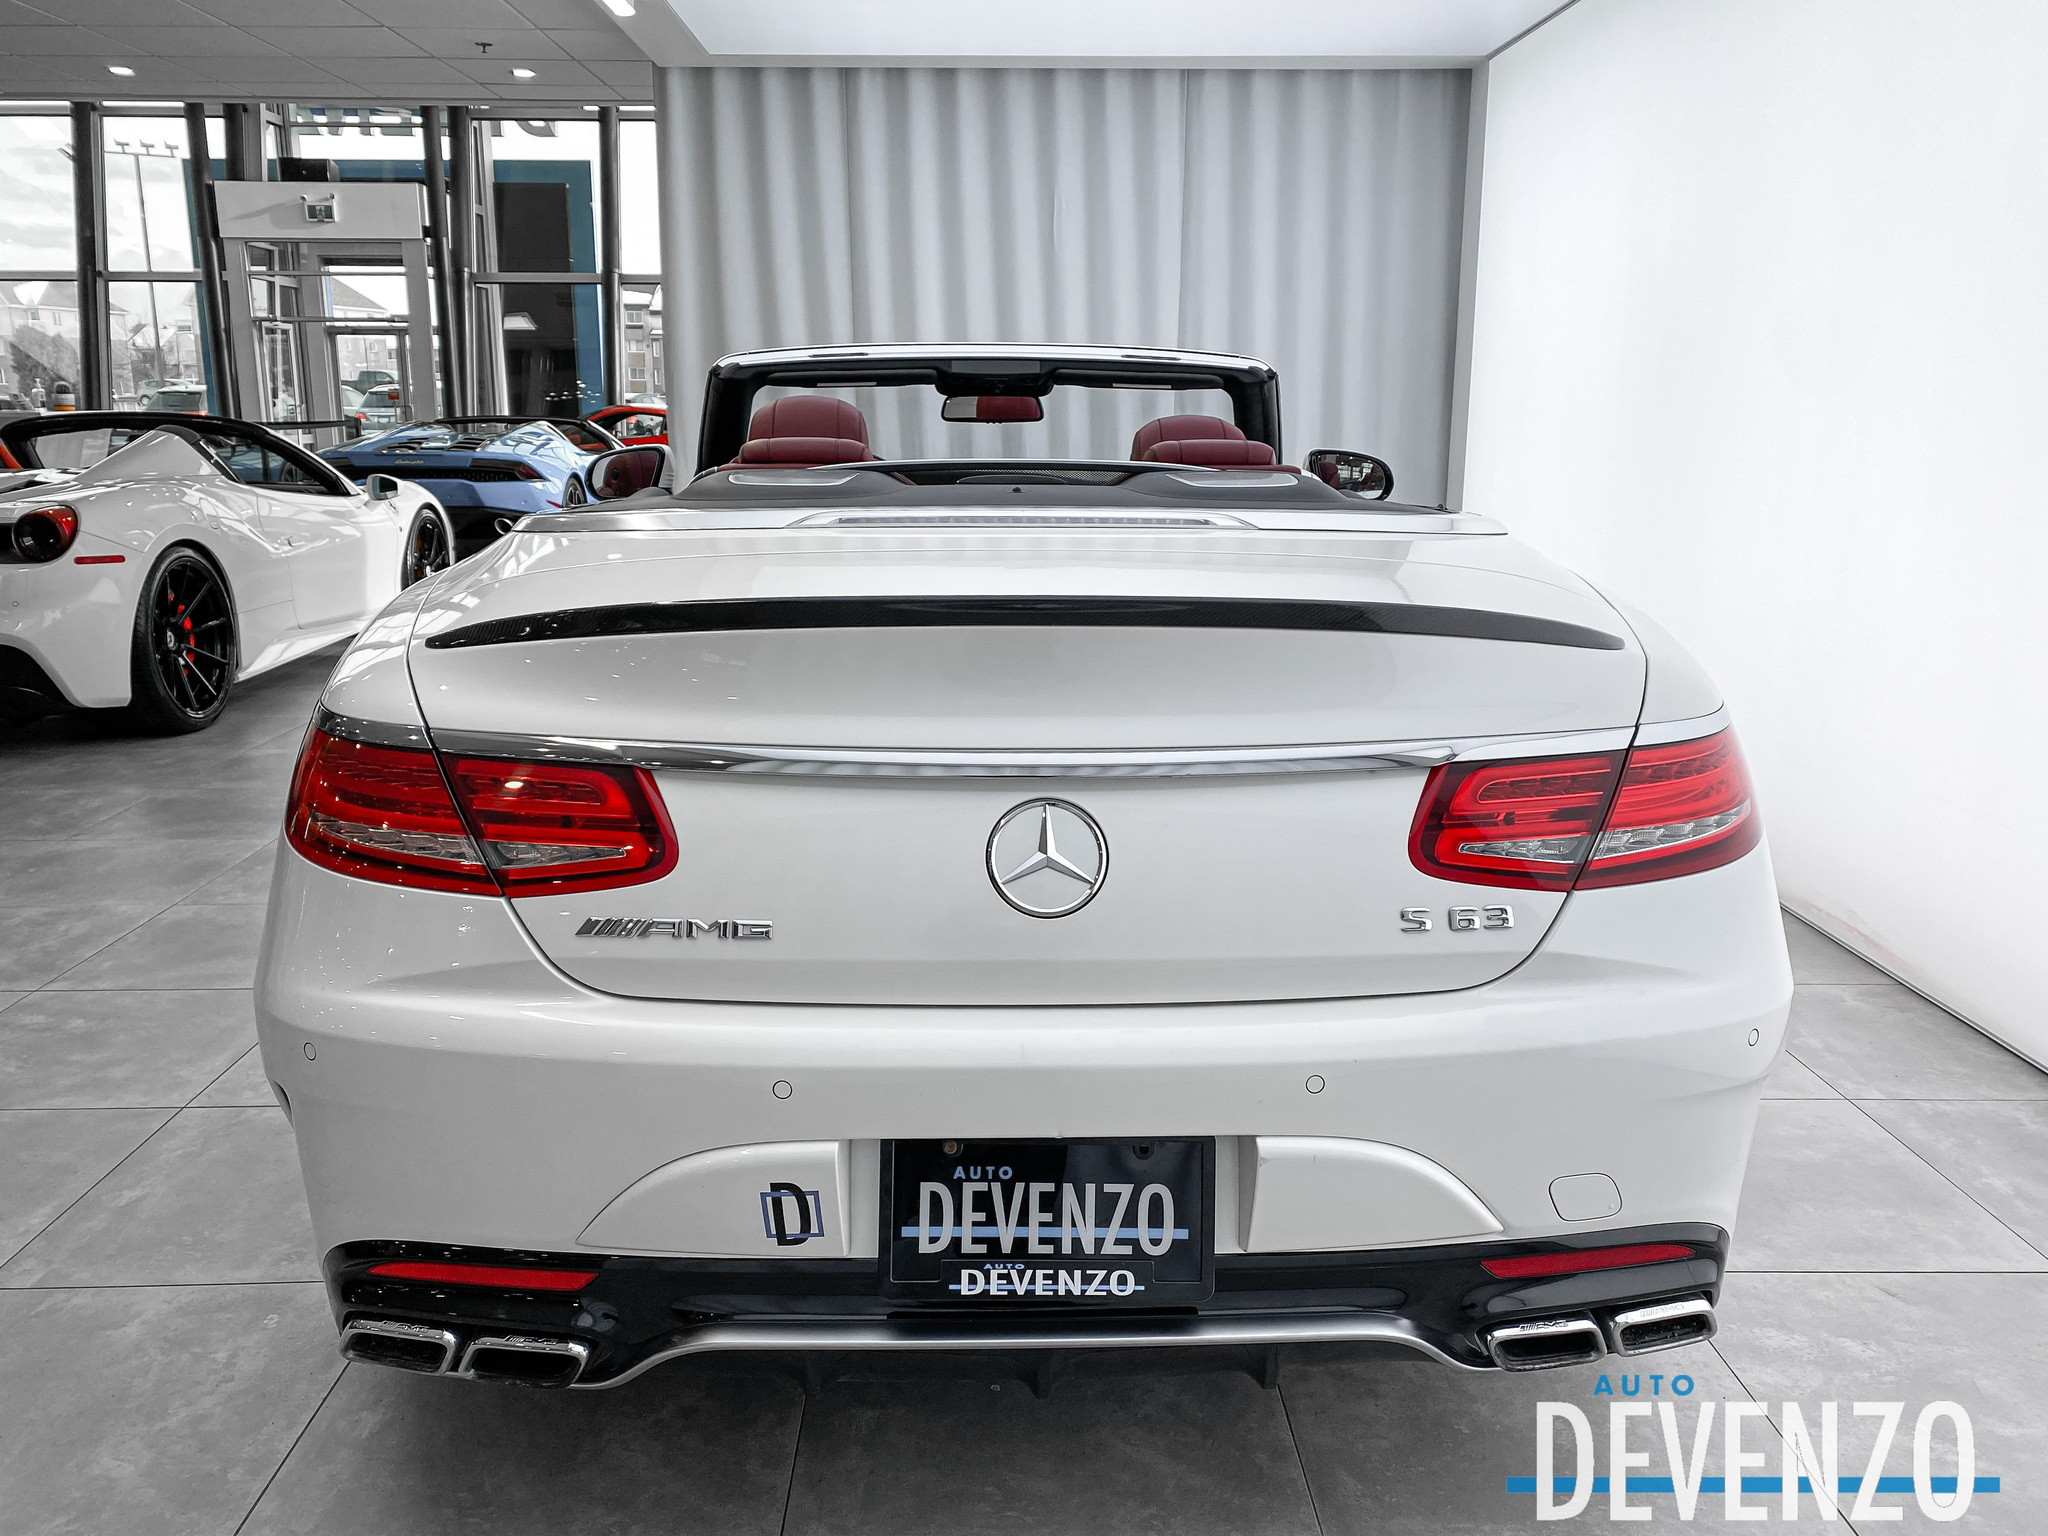 2017 Mercedes-Benz S-Class Cabriolet AMG S63 4MATIC Intelligent Drive complet